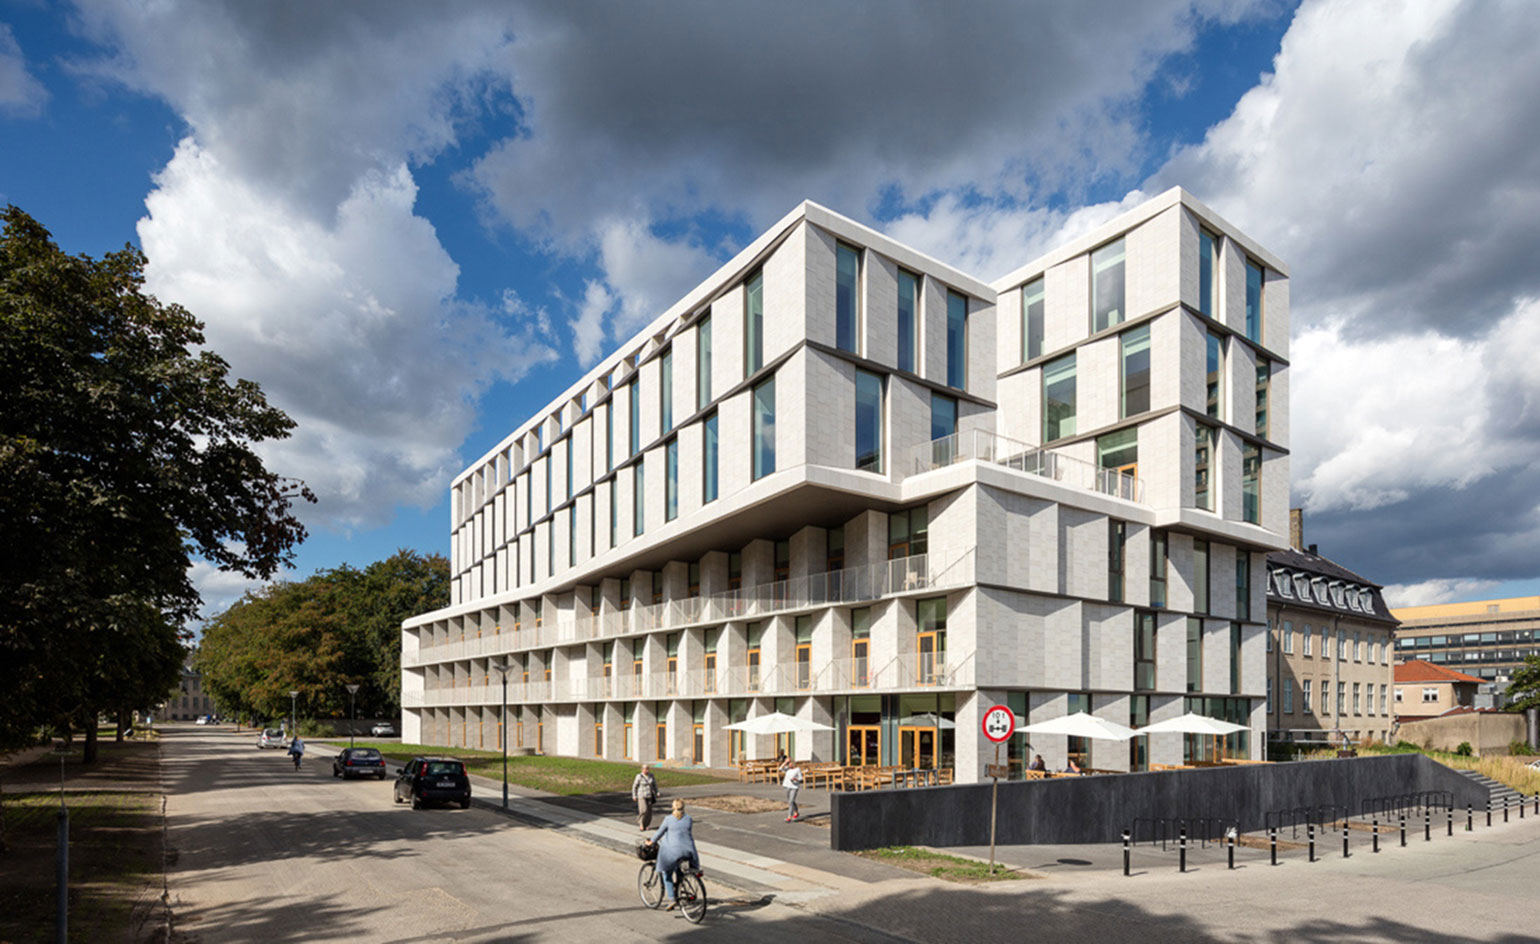 Health care news 3xn 39 s patient hotel arrives in copenhagen for Design hotel kopenhagen